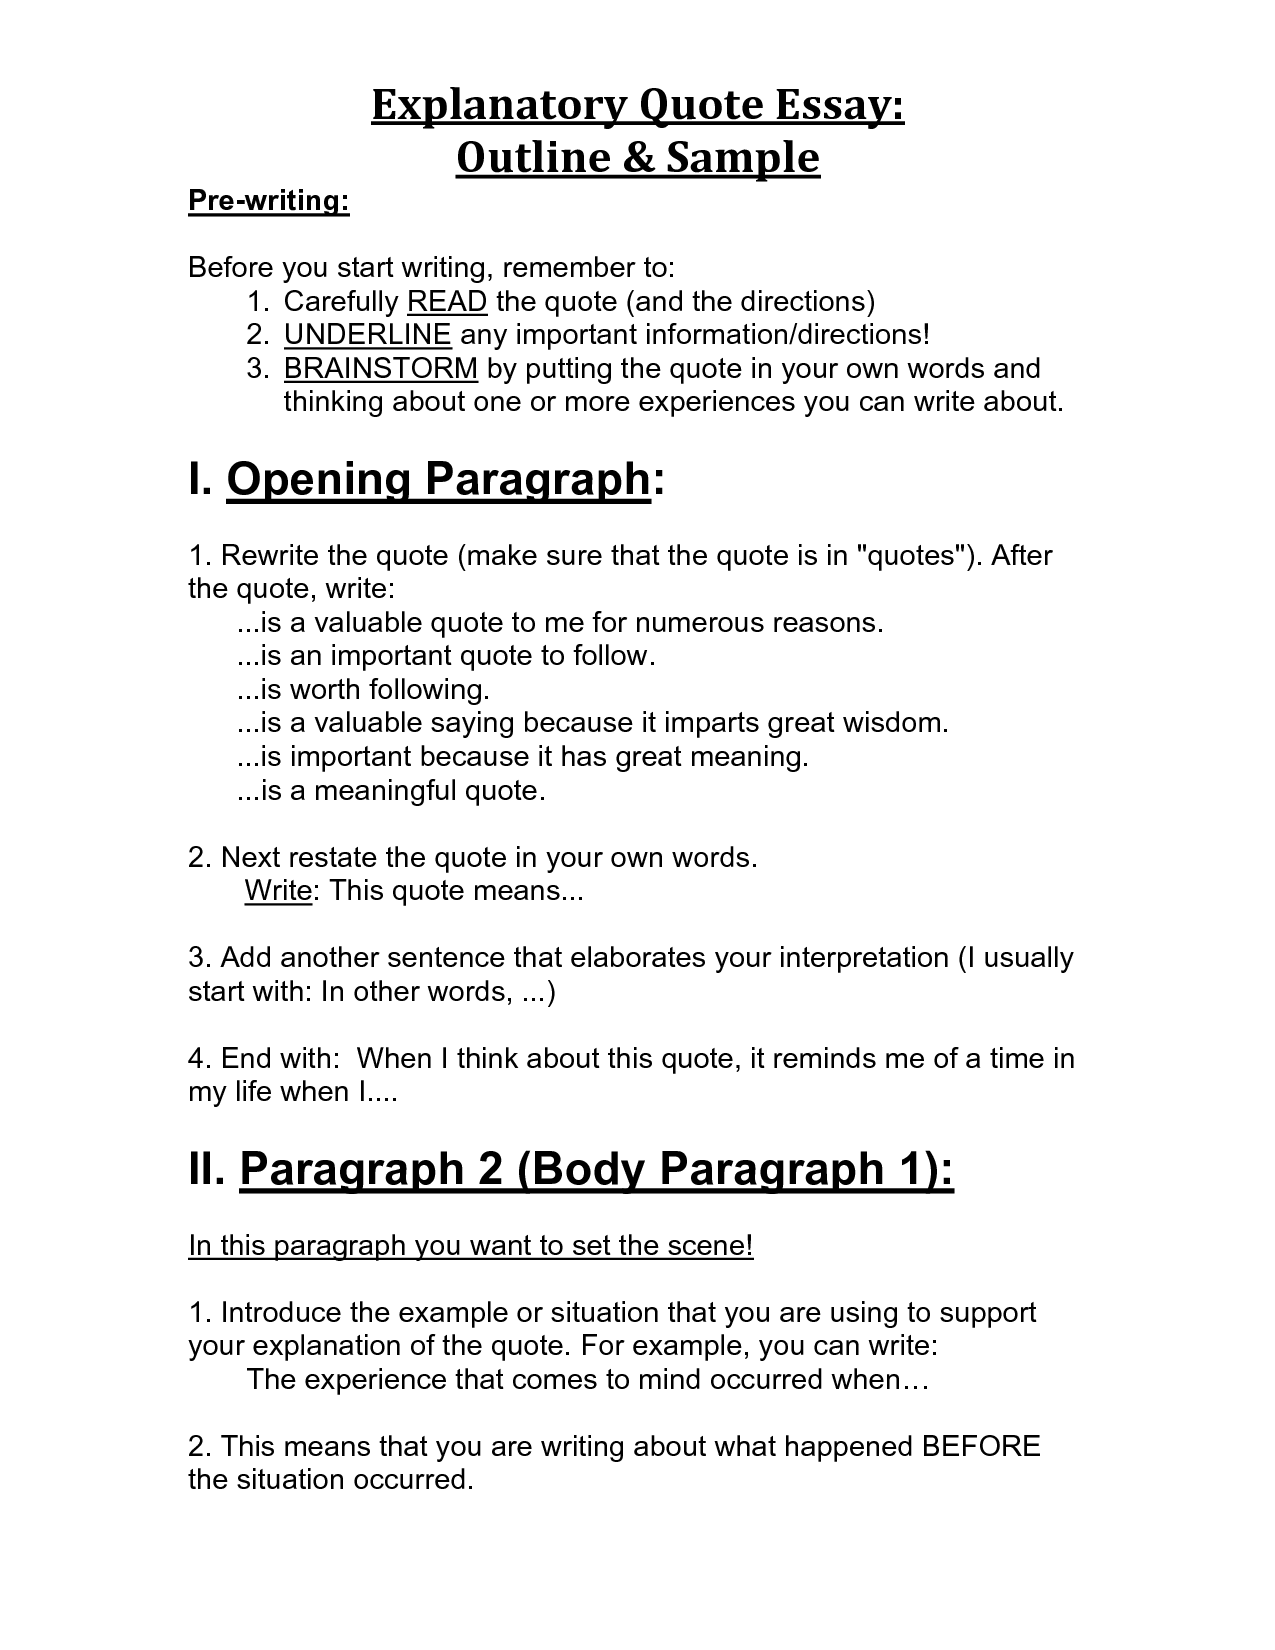 022 Explanation Essay Expository Format High School Common Core Explanatory Of Informativeexplanatory Quote Outliness Informative For Middle What Is An Outstanding Essay/example The Purpose Should Include Full